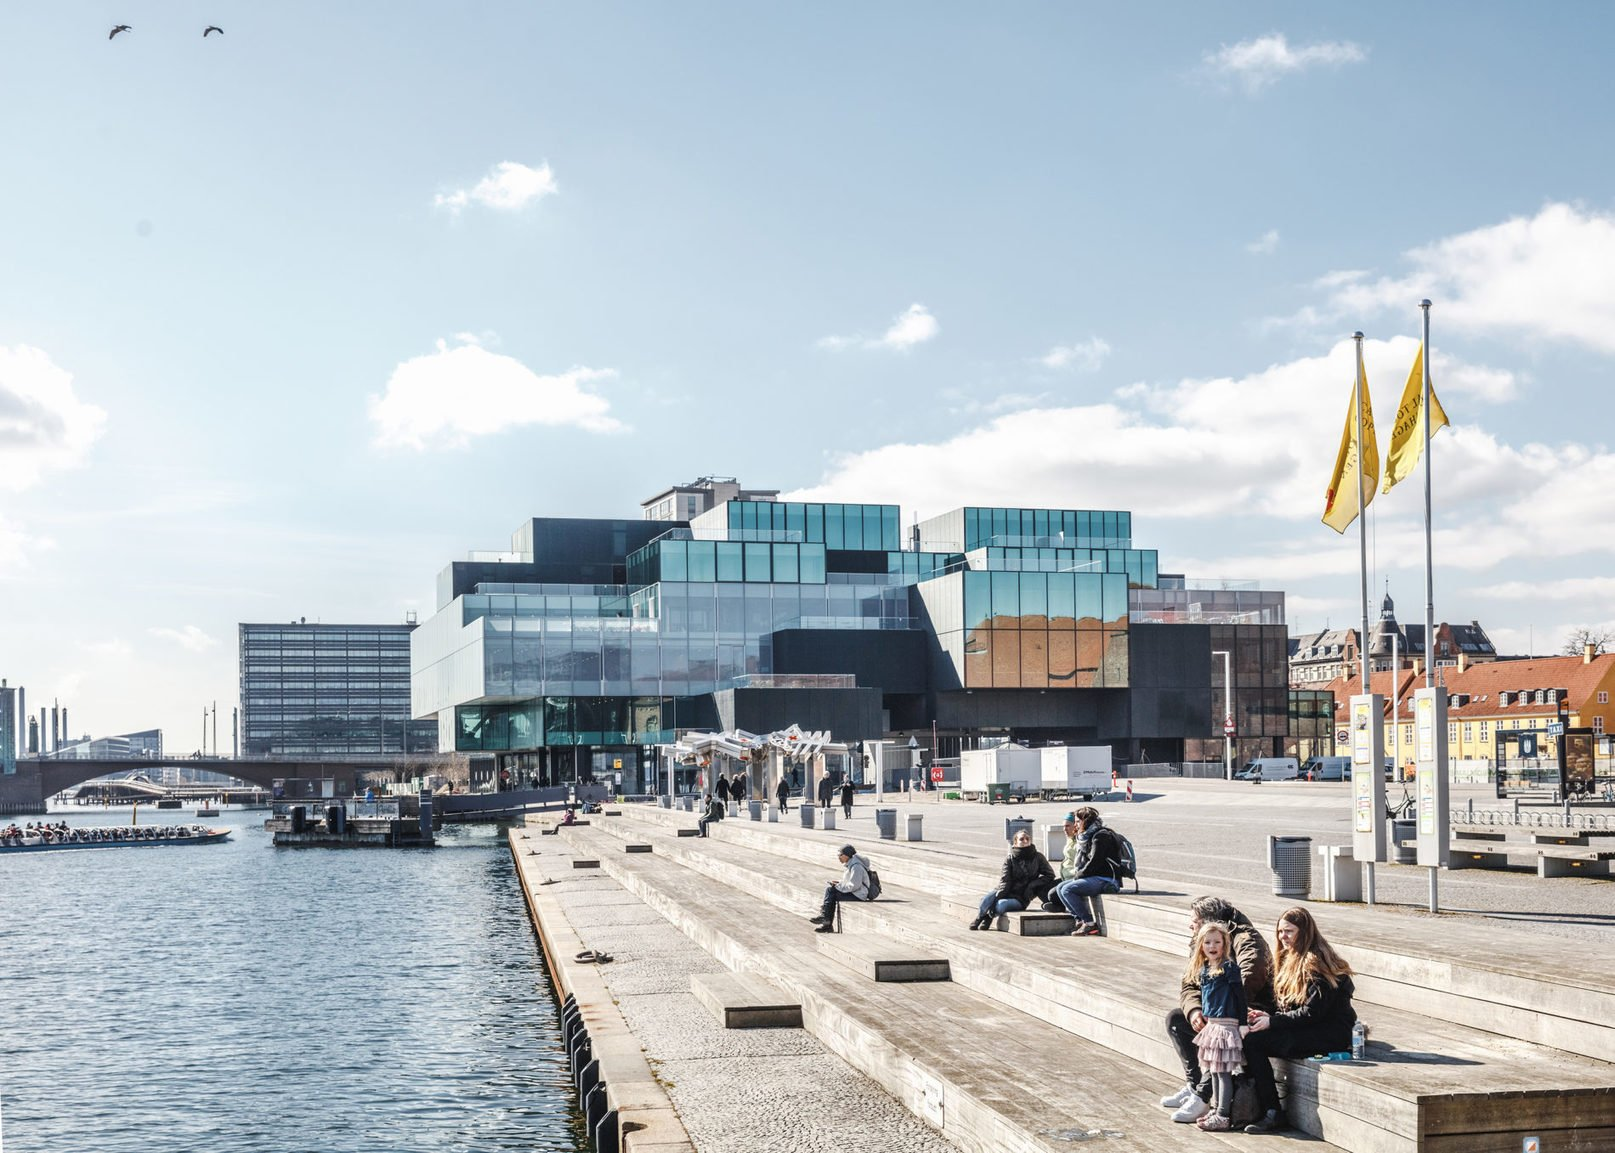 Copenhageners Don't Care About Sustainability, The Circular Economy